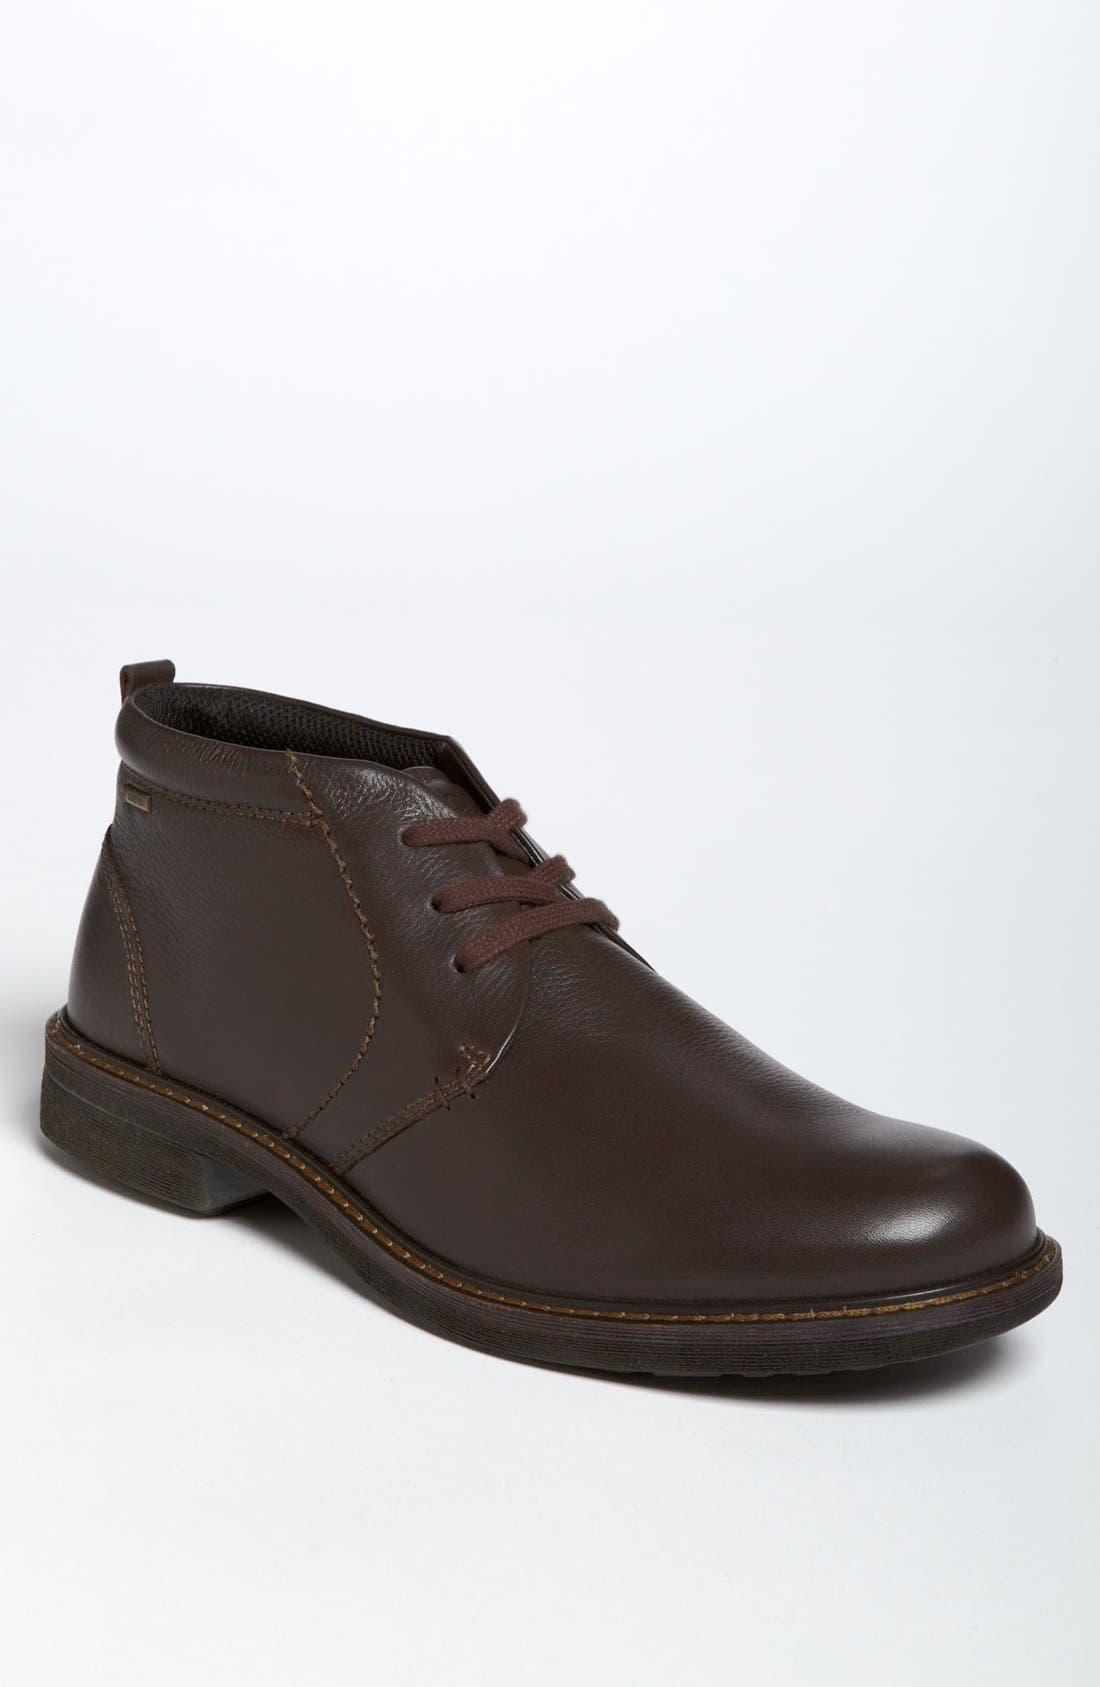 'Turn' Chukka Boot,                             Main thumbnail 1, color,                             COFFEE LEATHER